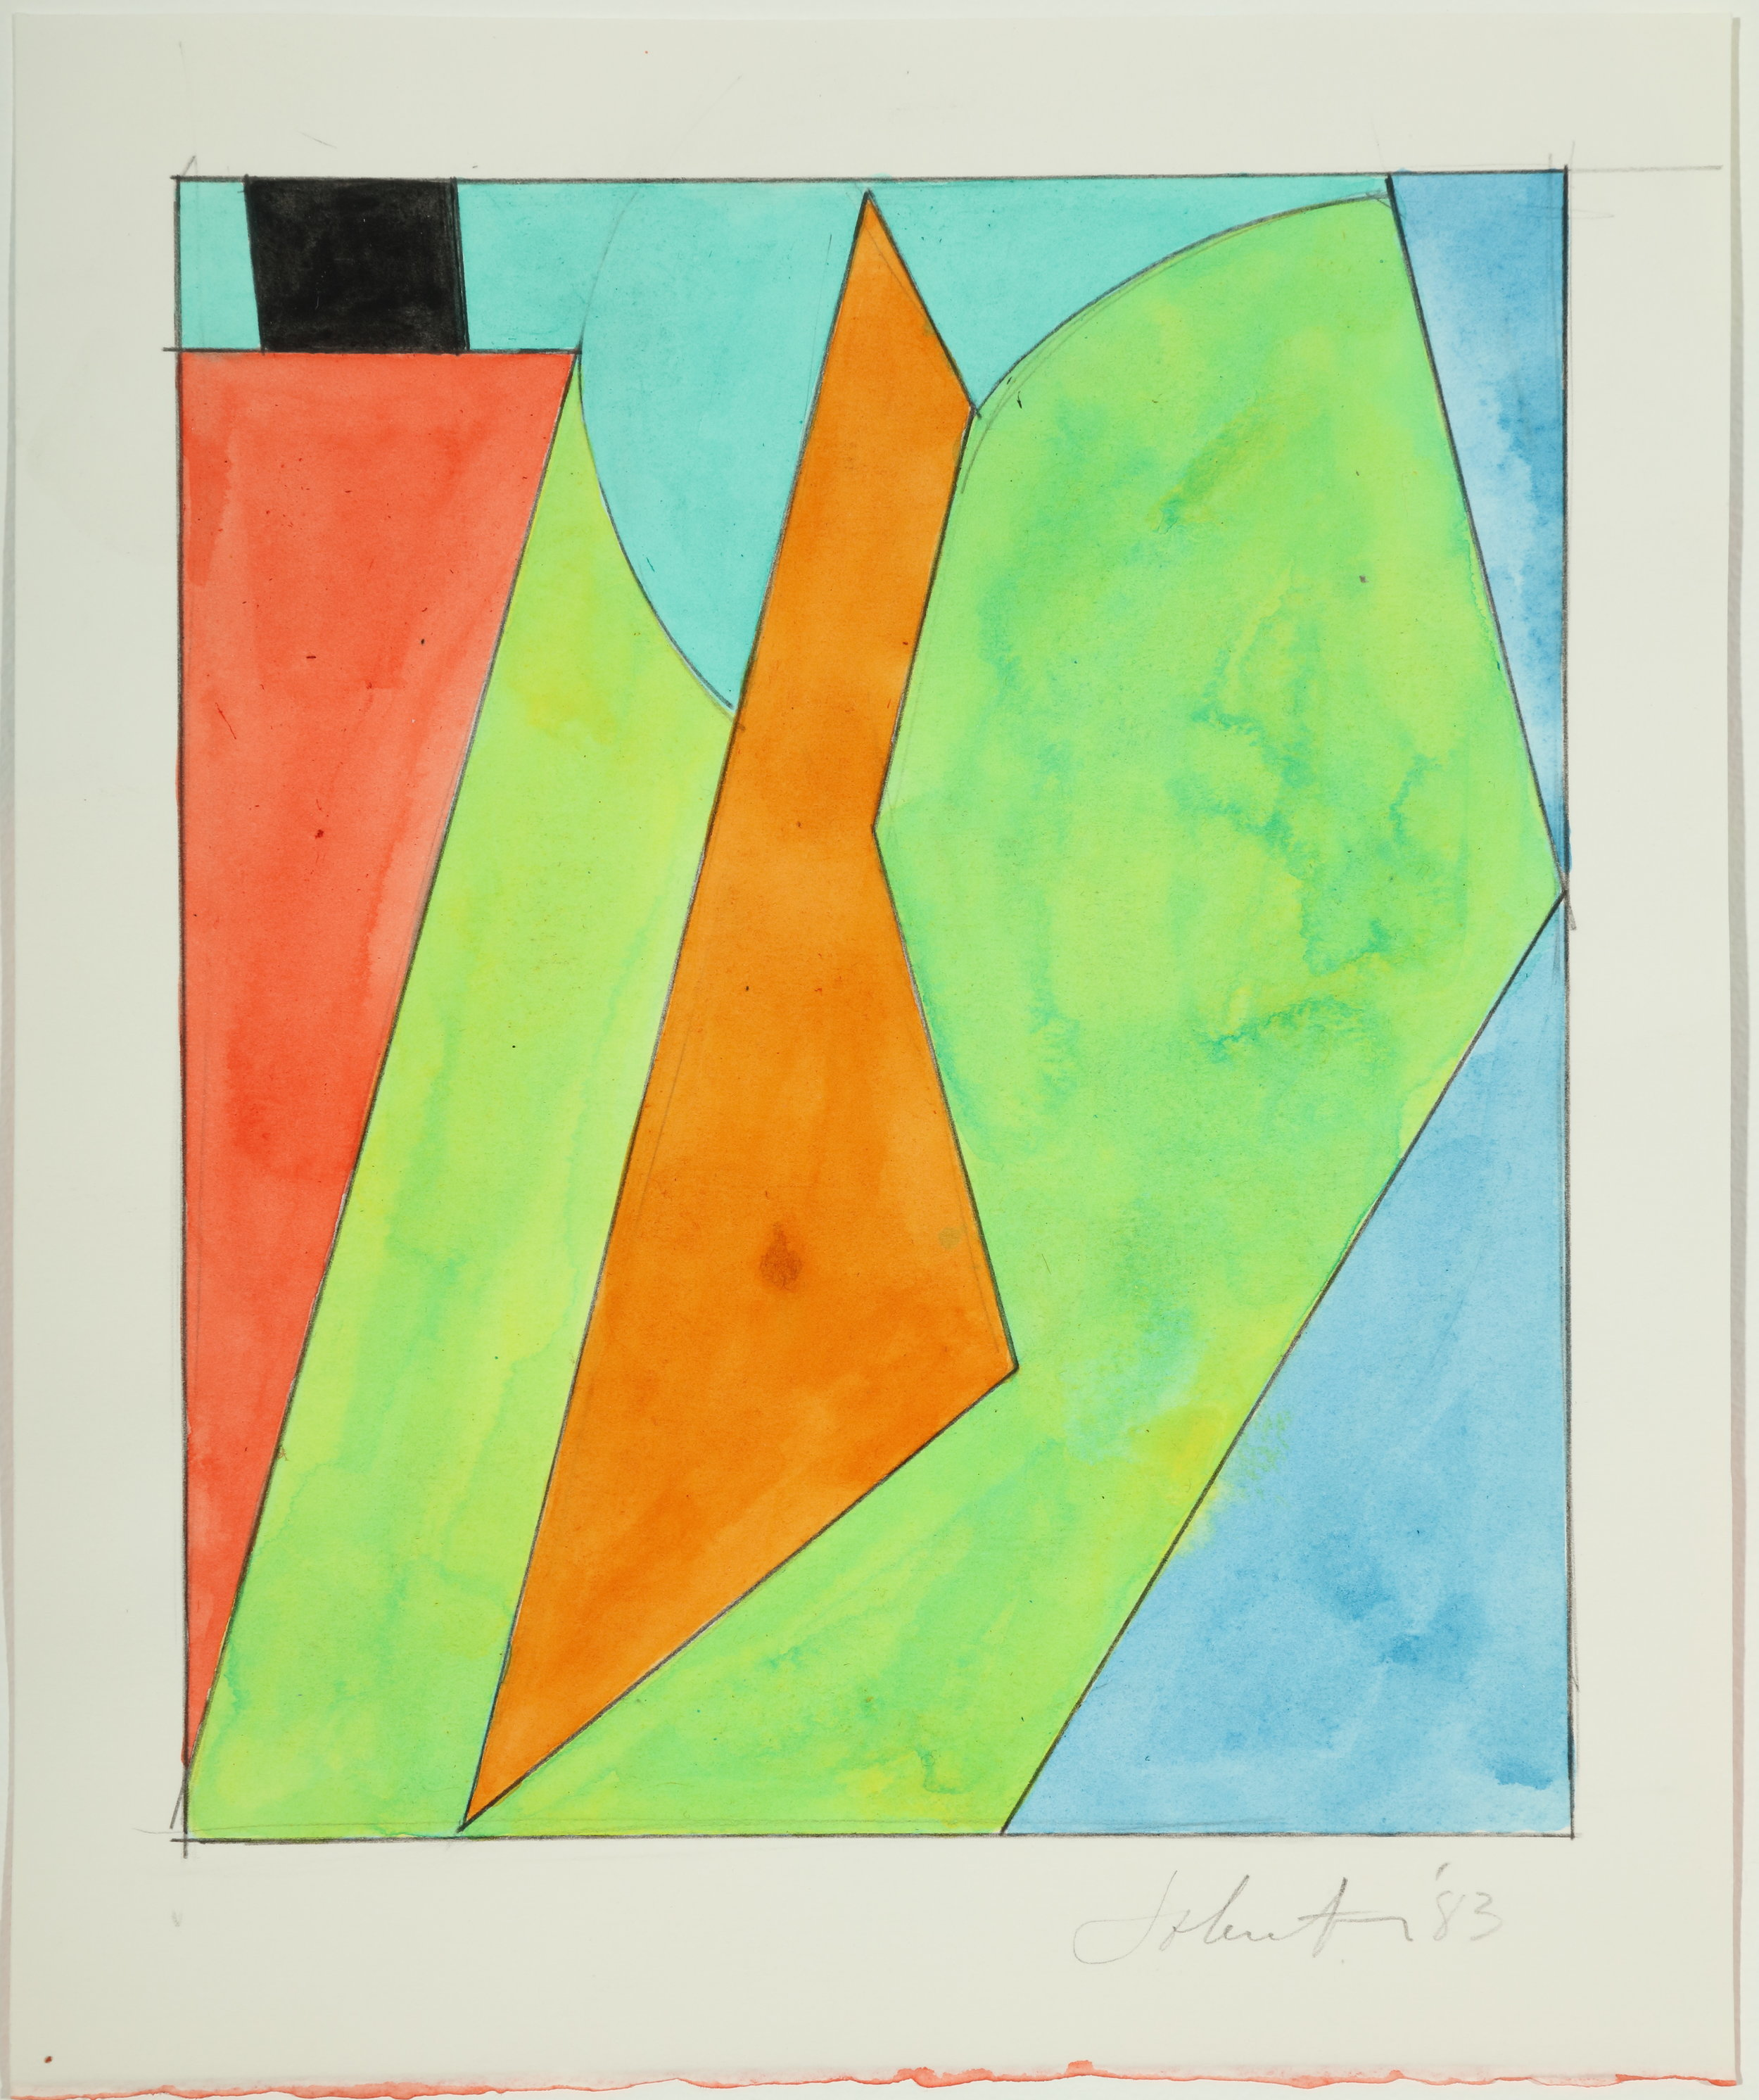 Untitled, Color Study, 983 Acrylic and pencil on paper 10.75H x 8.87W inches